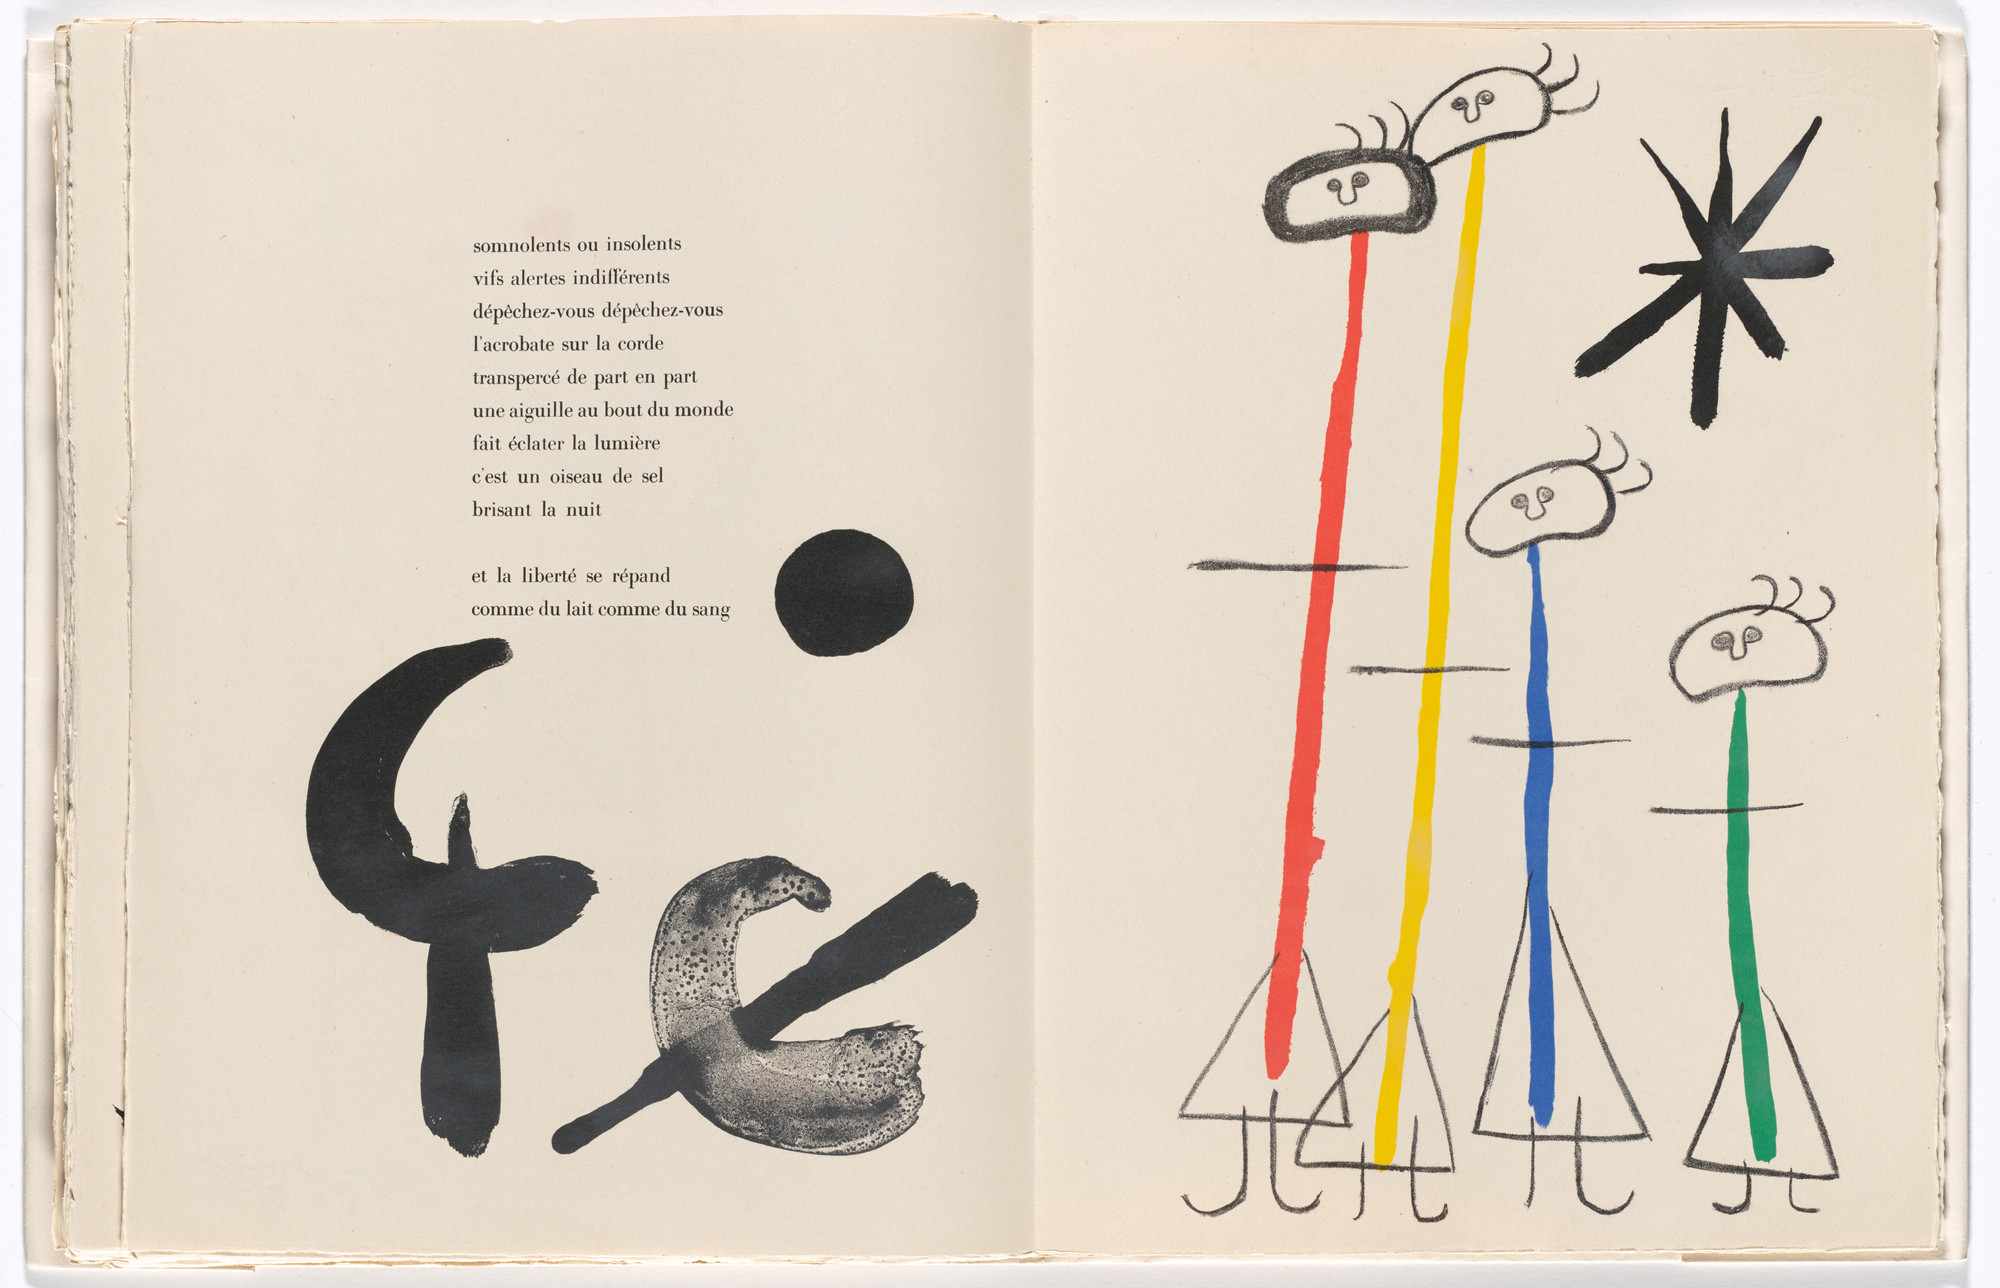 Joan Miró. Plate (page 99) from Parler seul (Speaking Alone). 1948–50, published 1950